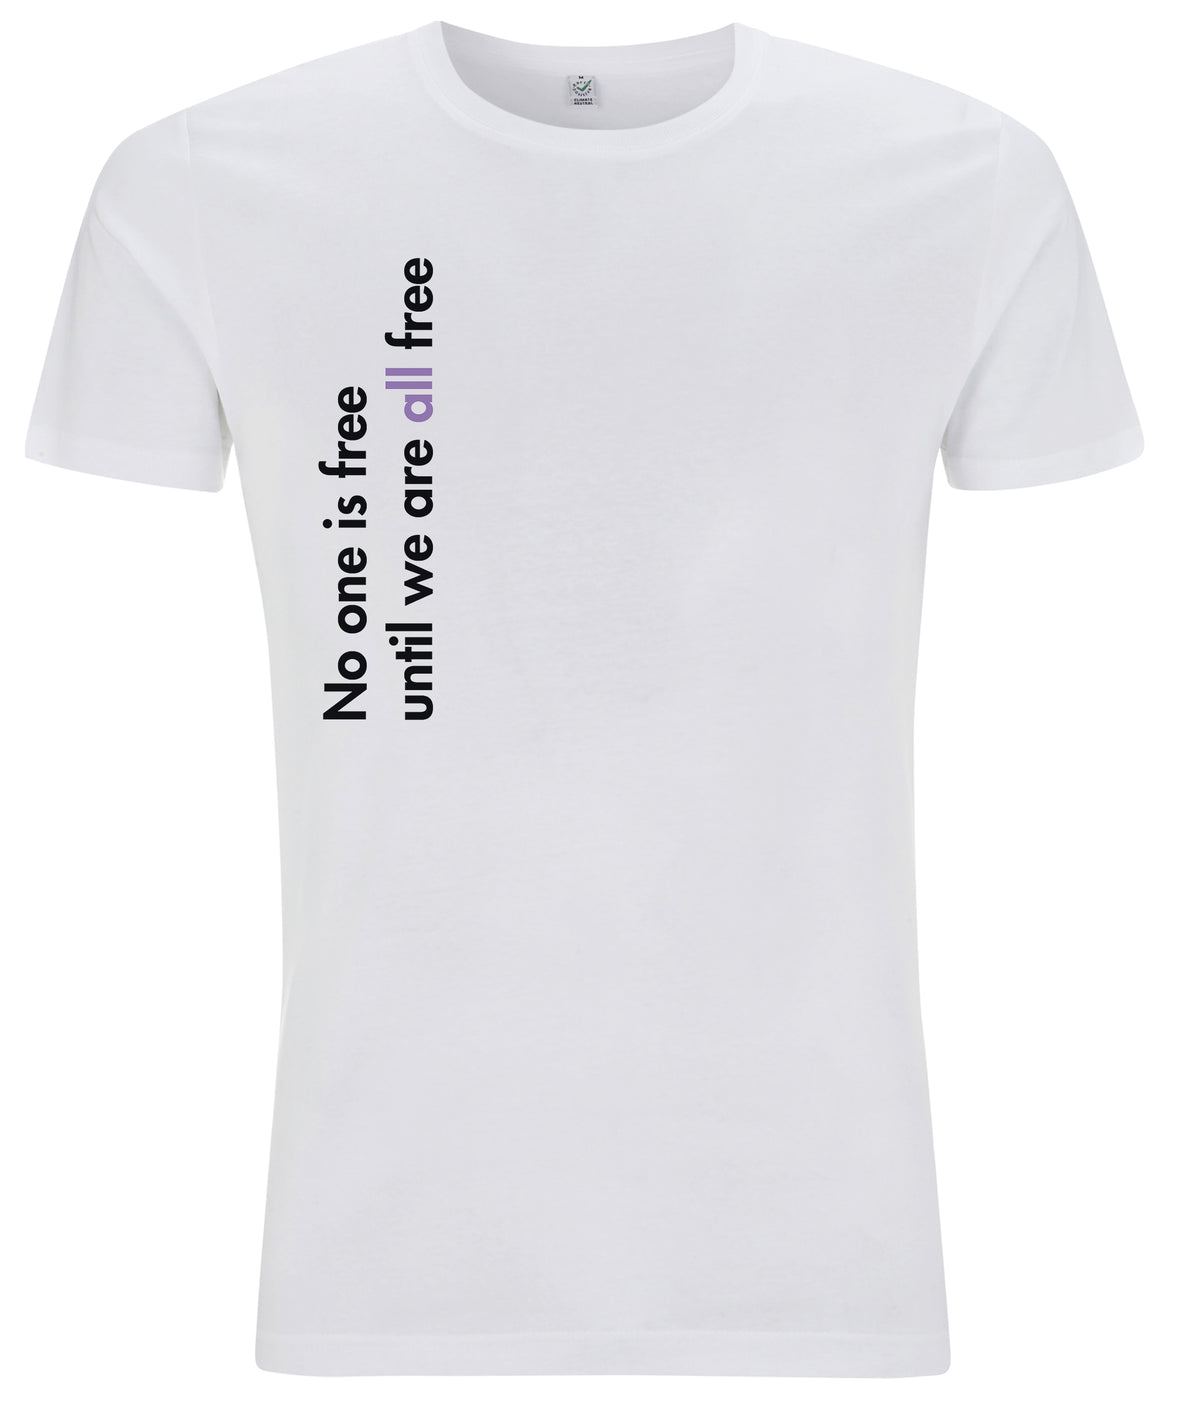 No One Is Free Until We Are All Free Organic Mens Feminist T Shirt White